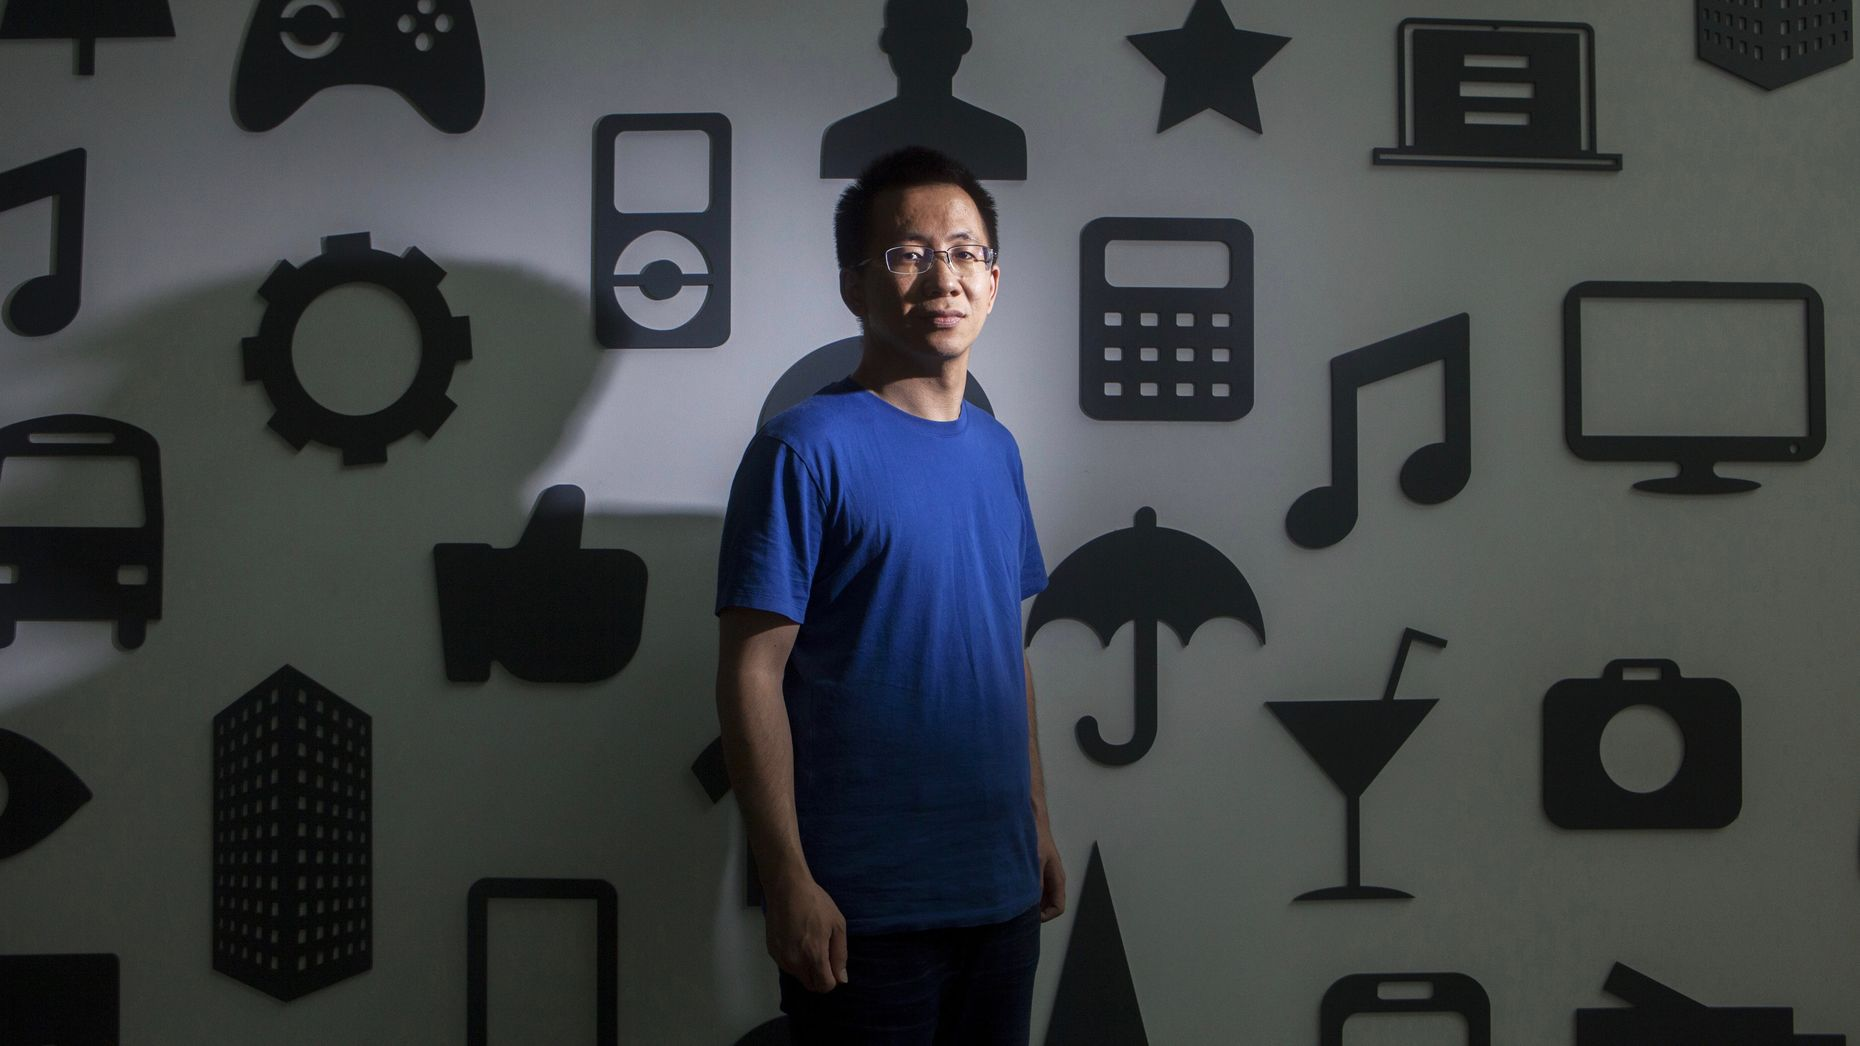 Byedance founder Zhang Yiming. Photo by Bloomberg